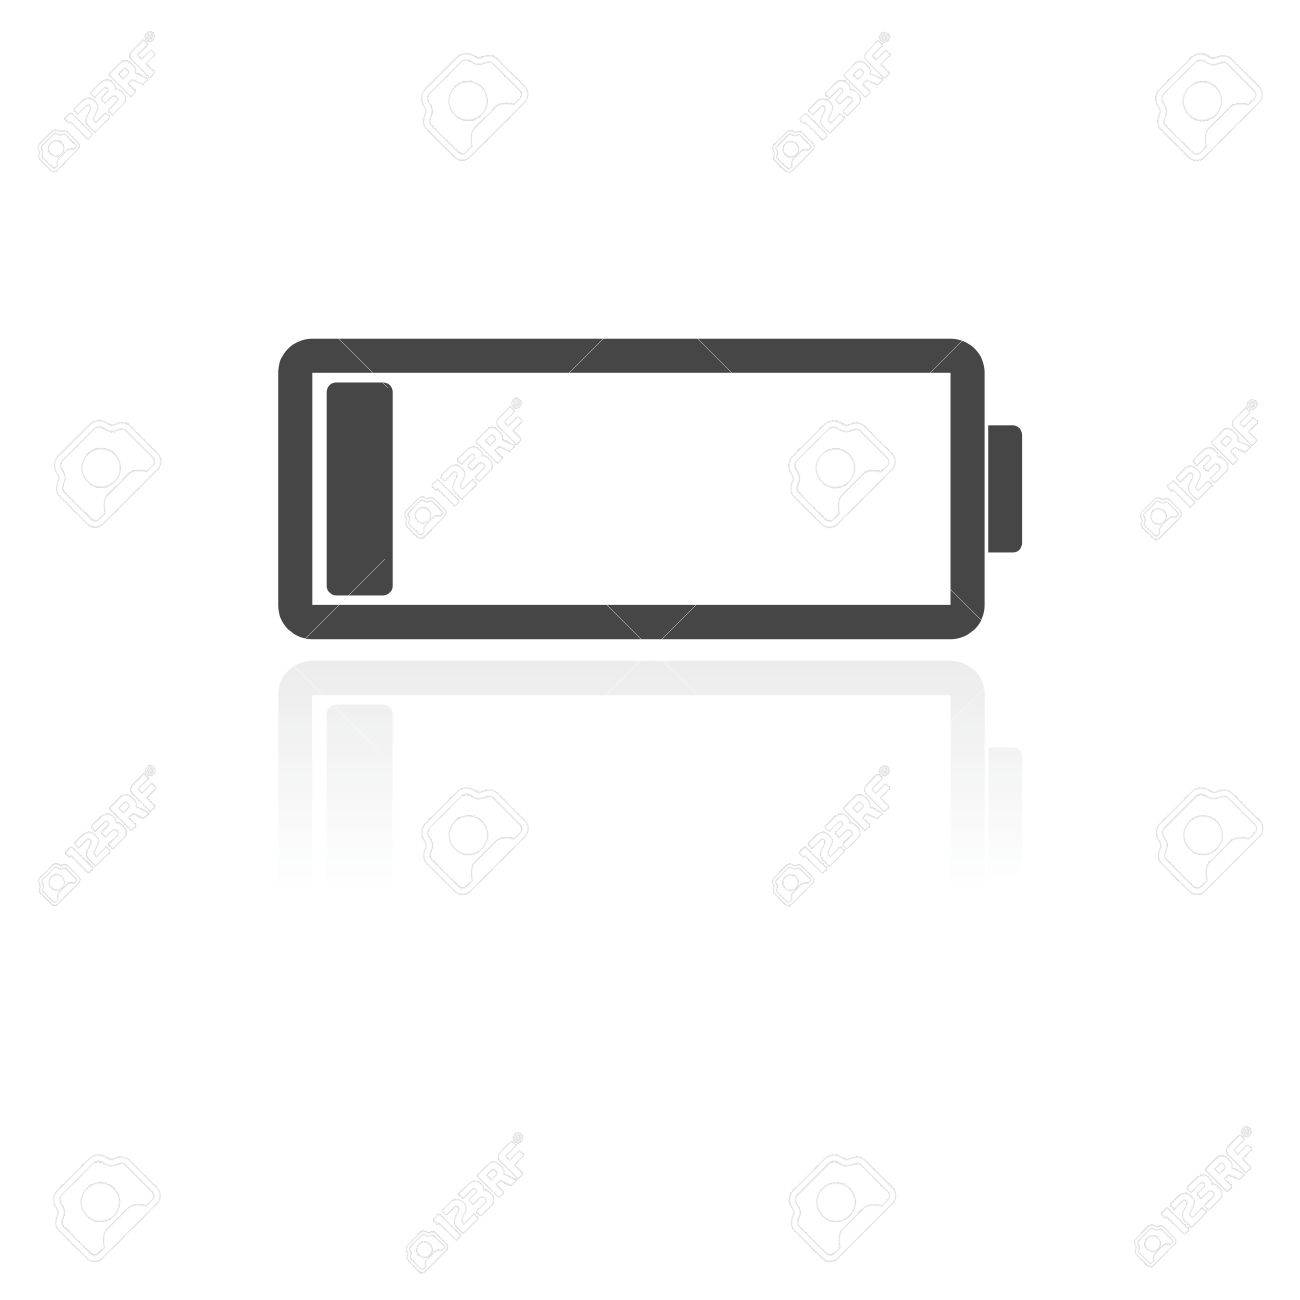 low battery icon royalty free cliparts vectors and stock illustration image 59604228 123rf com